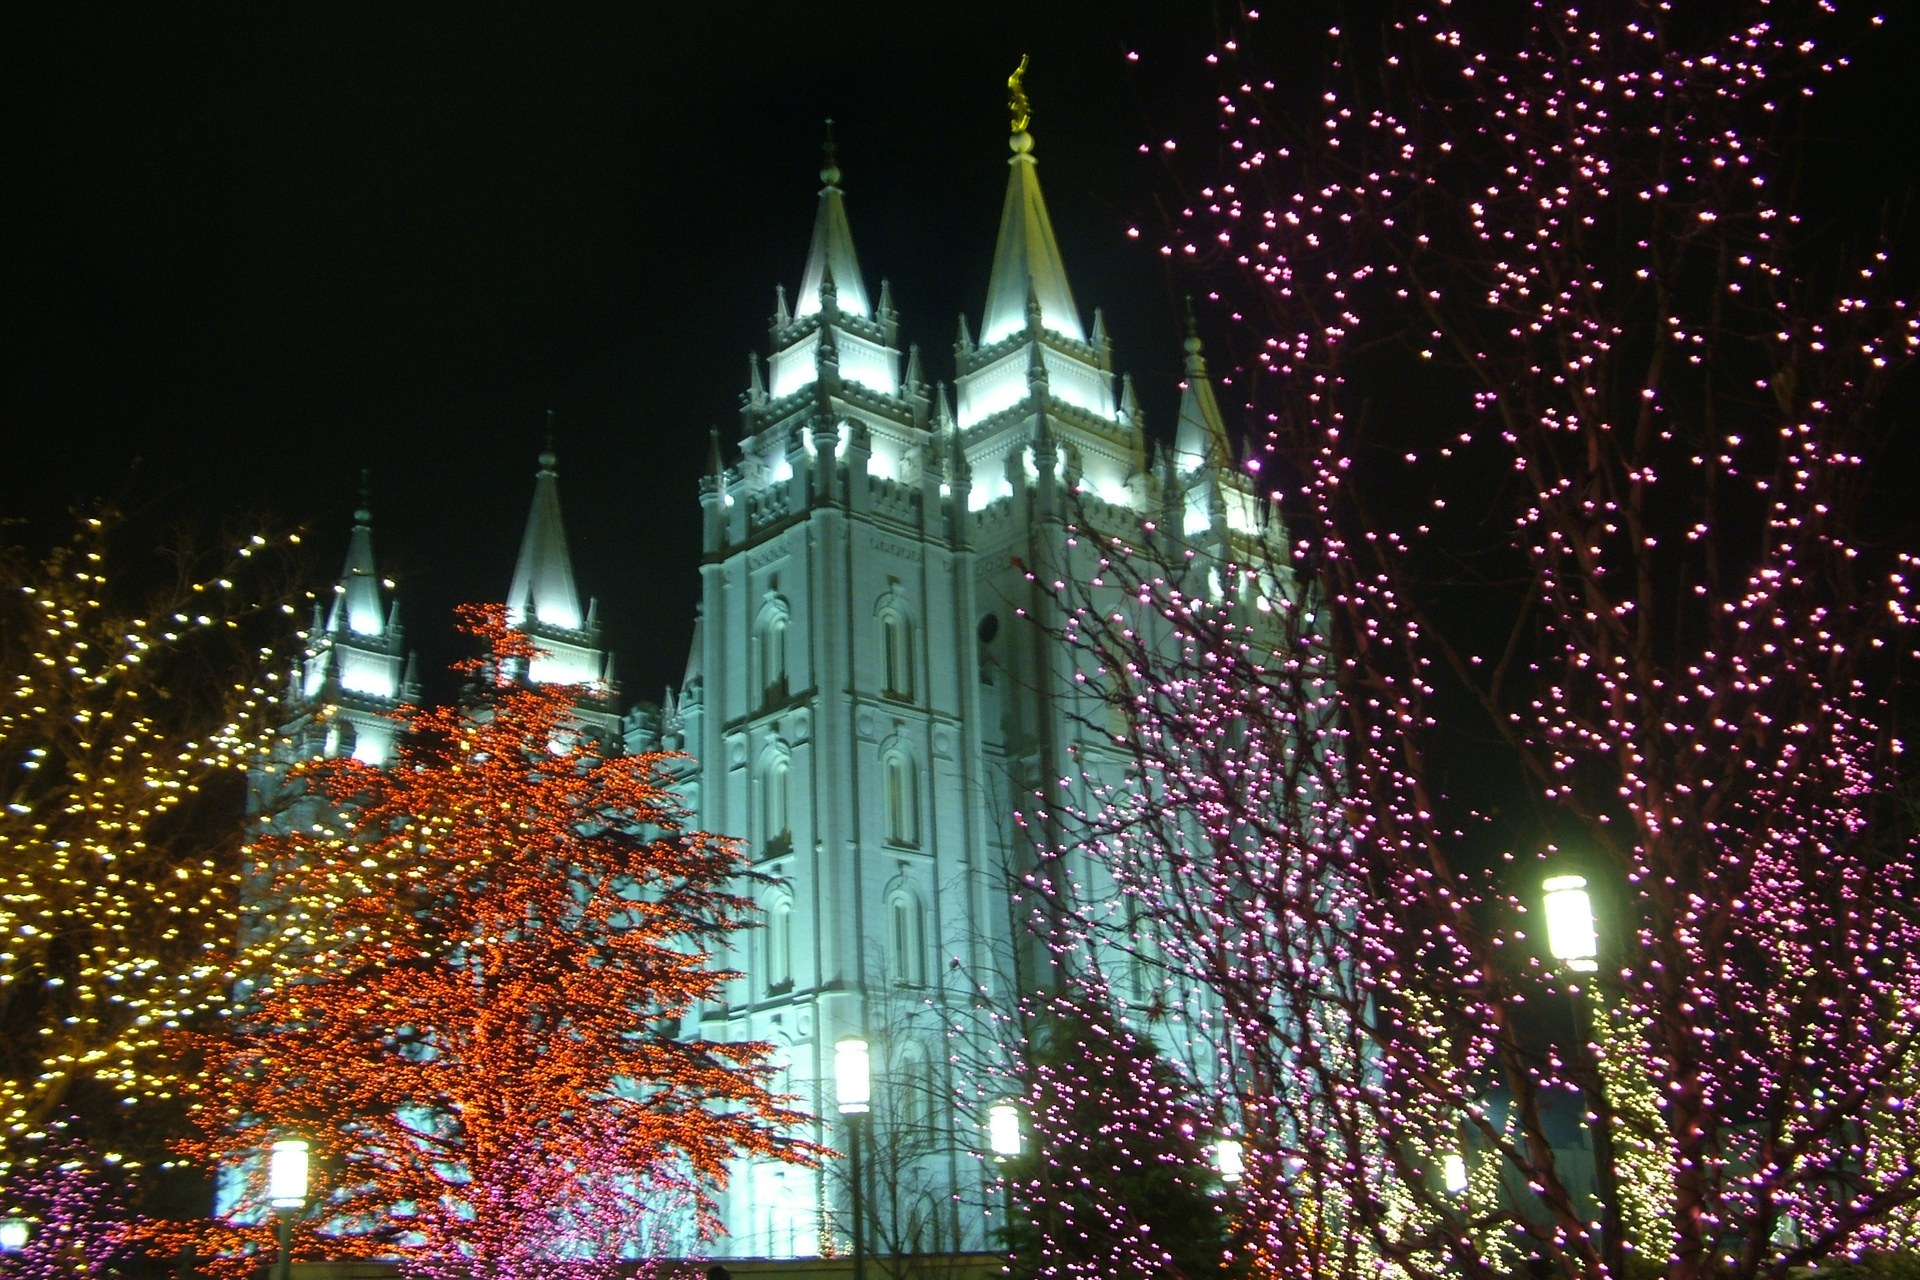 Salt Lake City, Utah LDS Temple at night during Christmas and filled with lights